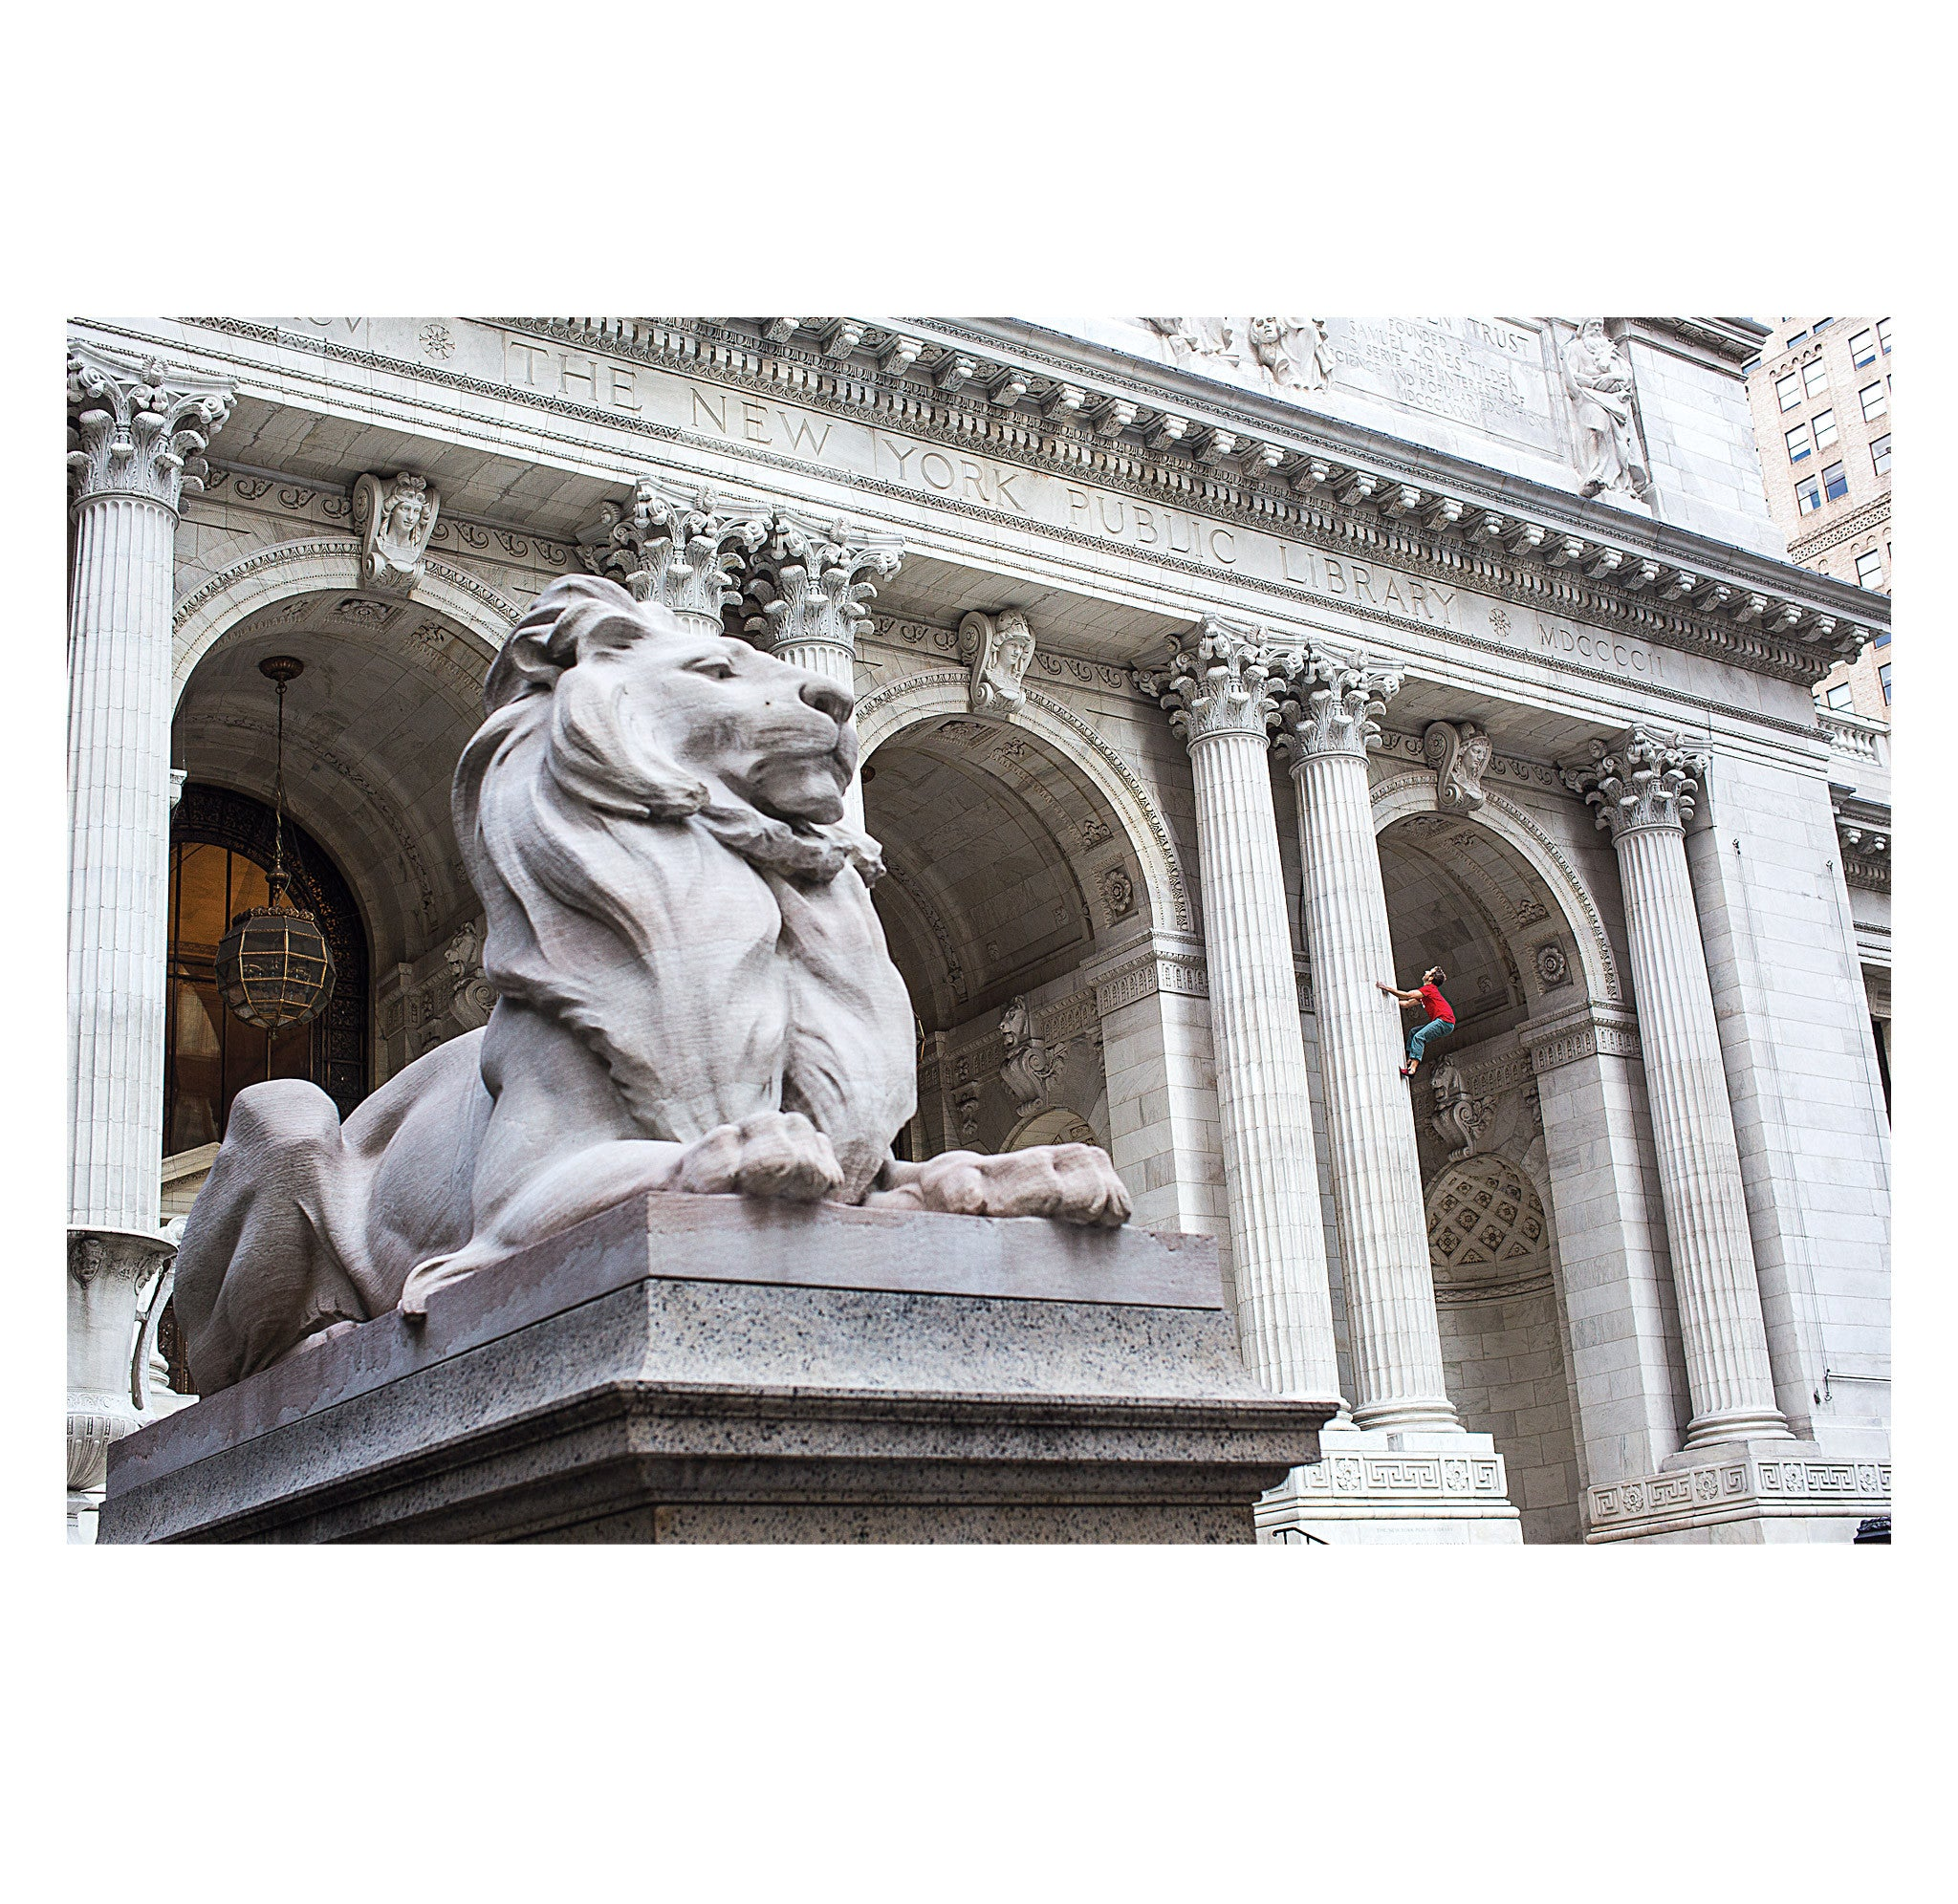 Jeff Johnson – New York Public Library